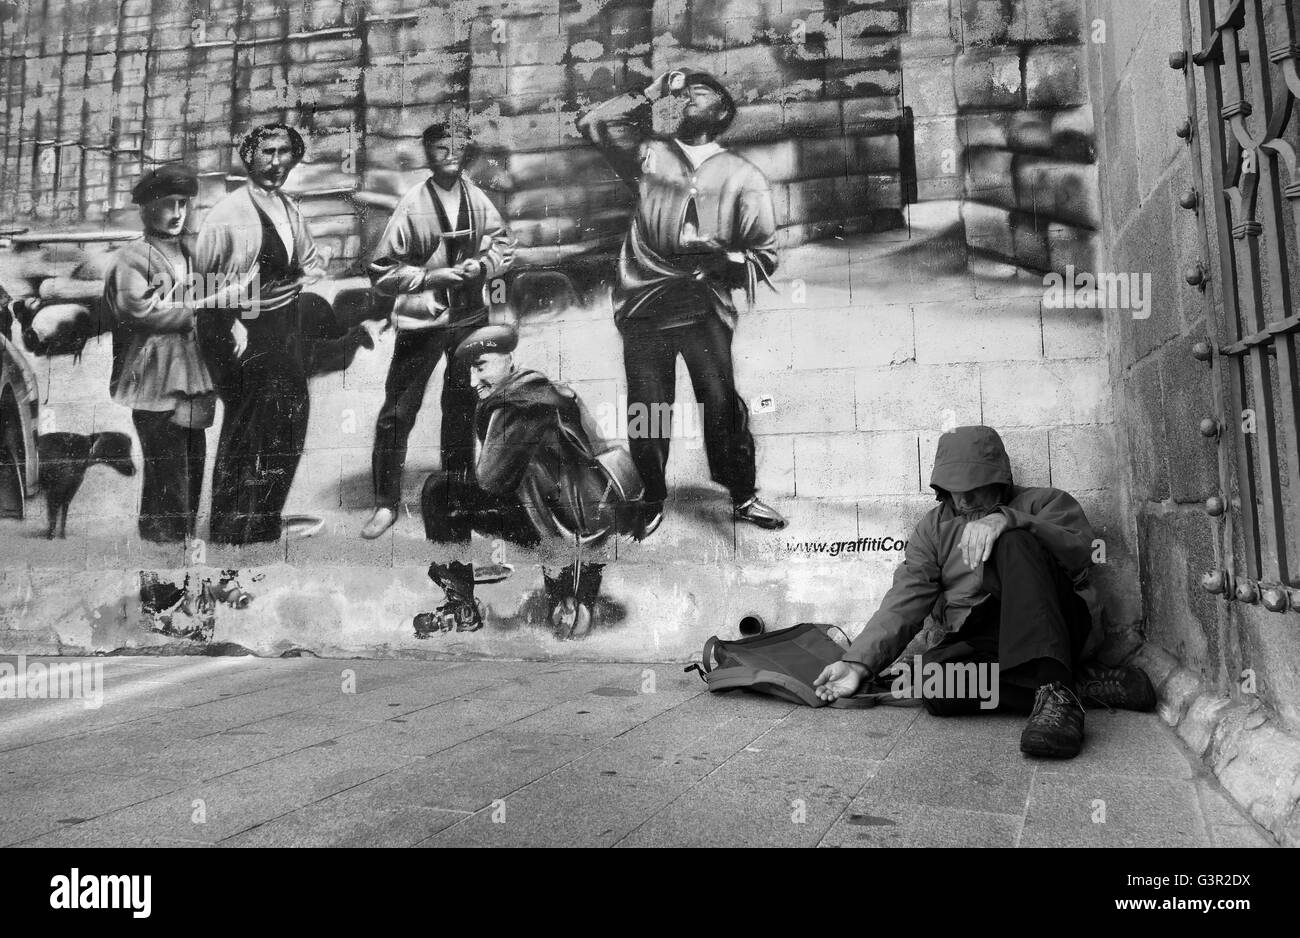 Man begging in street in Spain - Stock Image